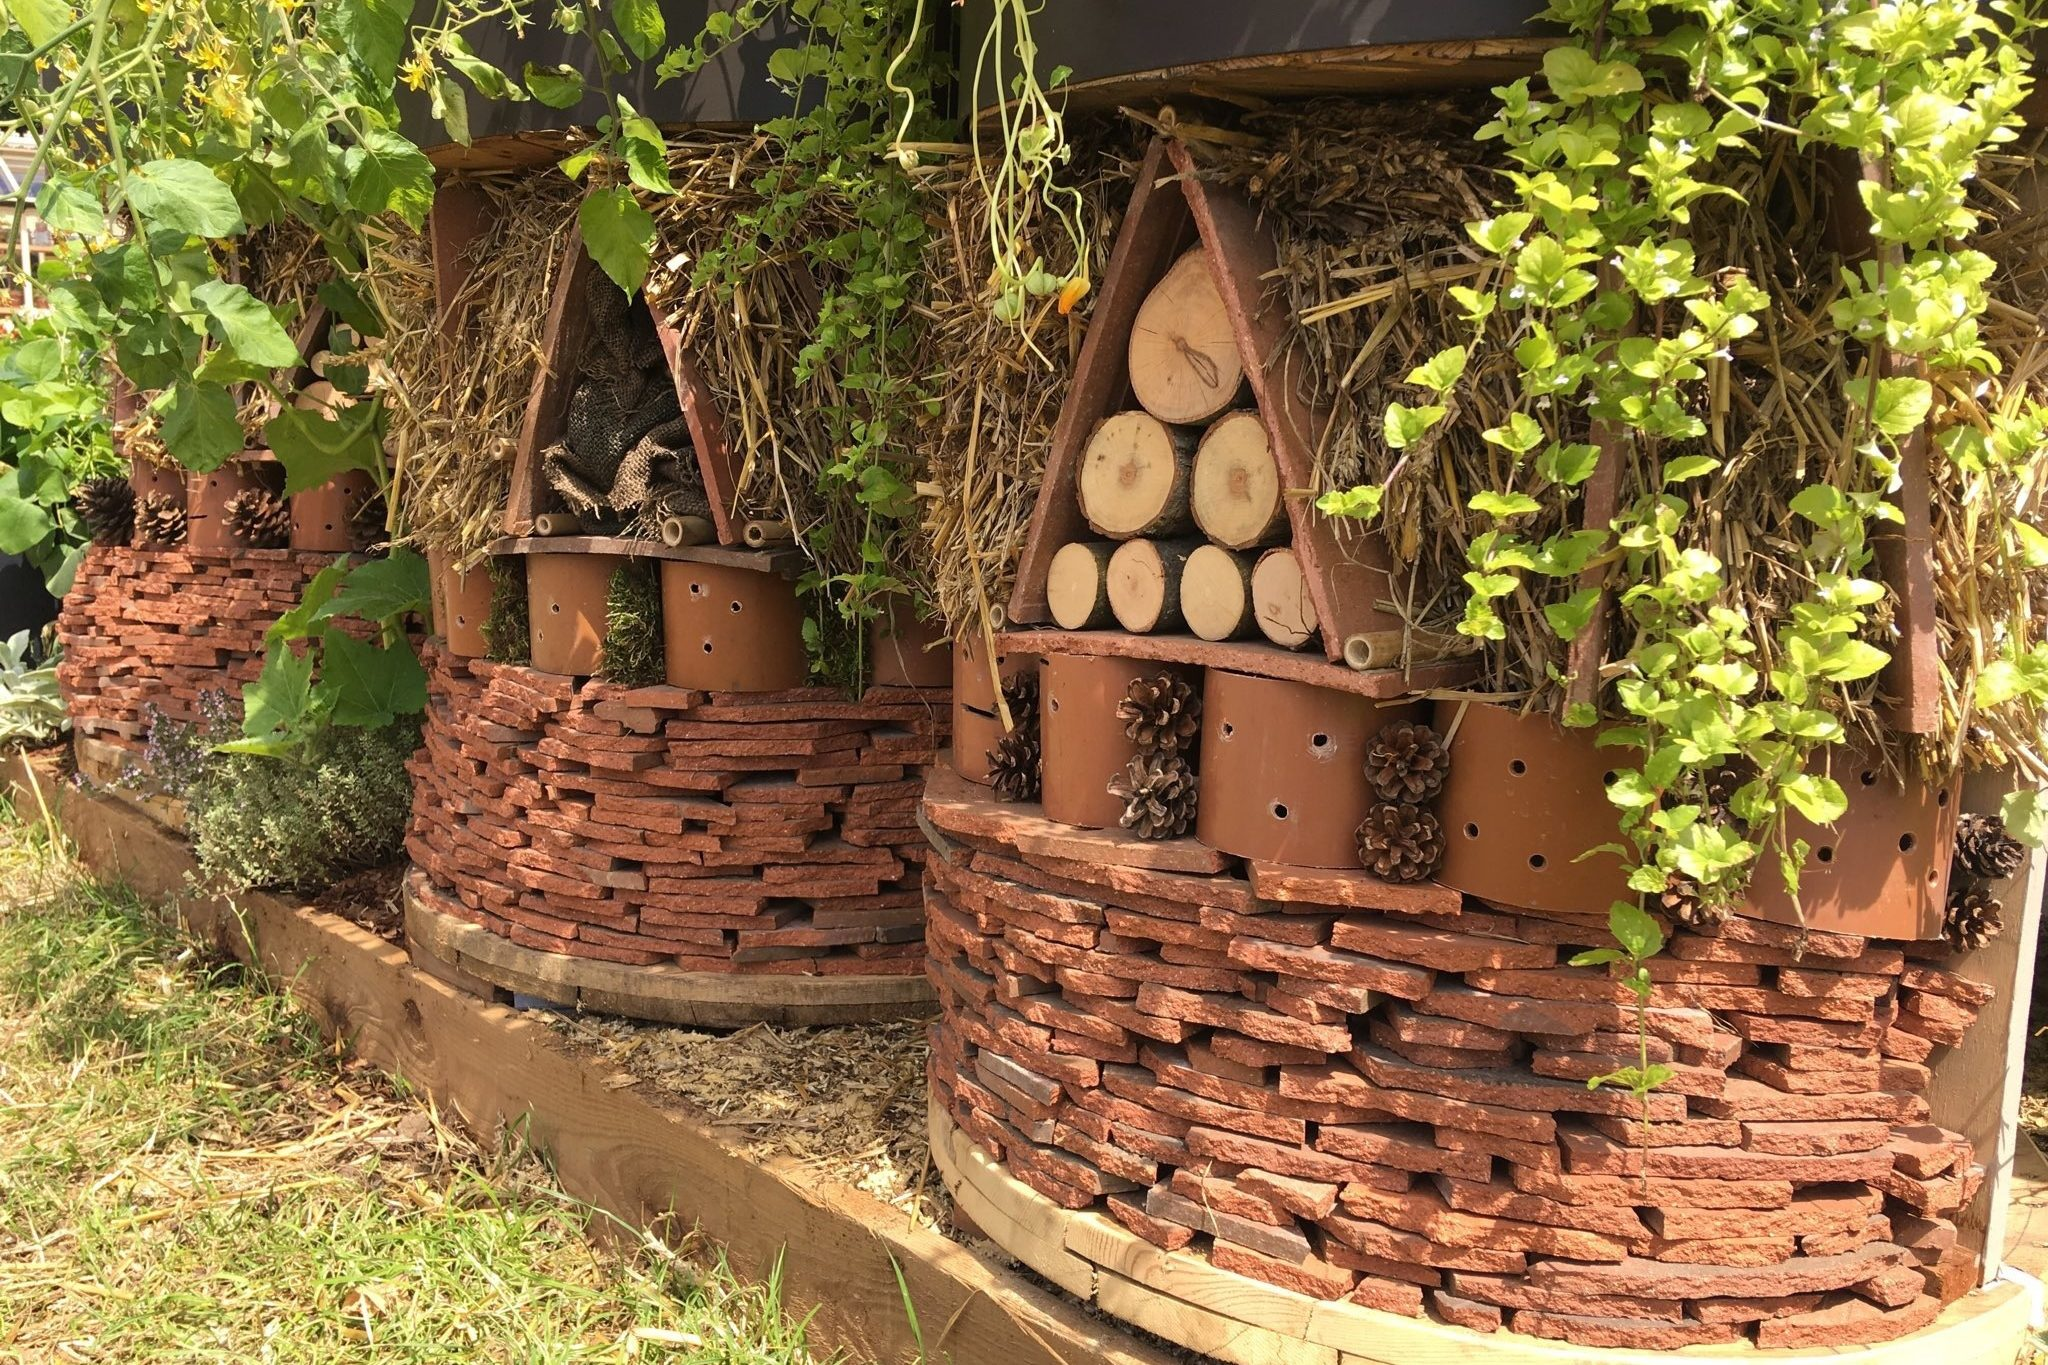 Raised planters incorporate bug hotels made from tiles and wood